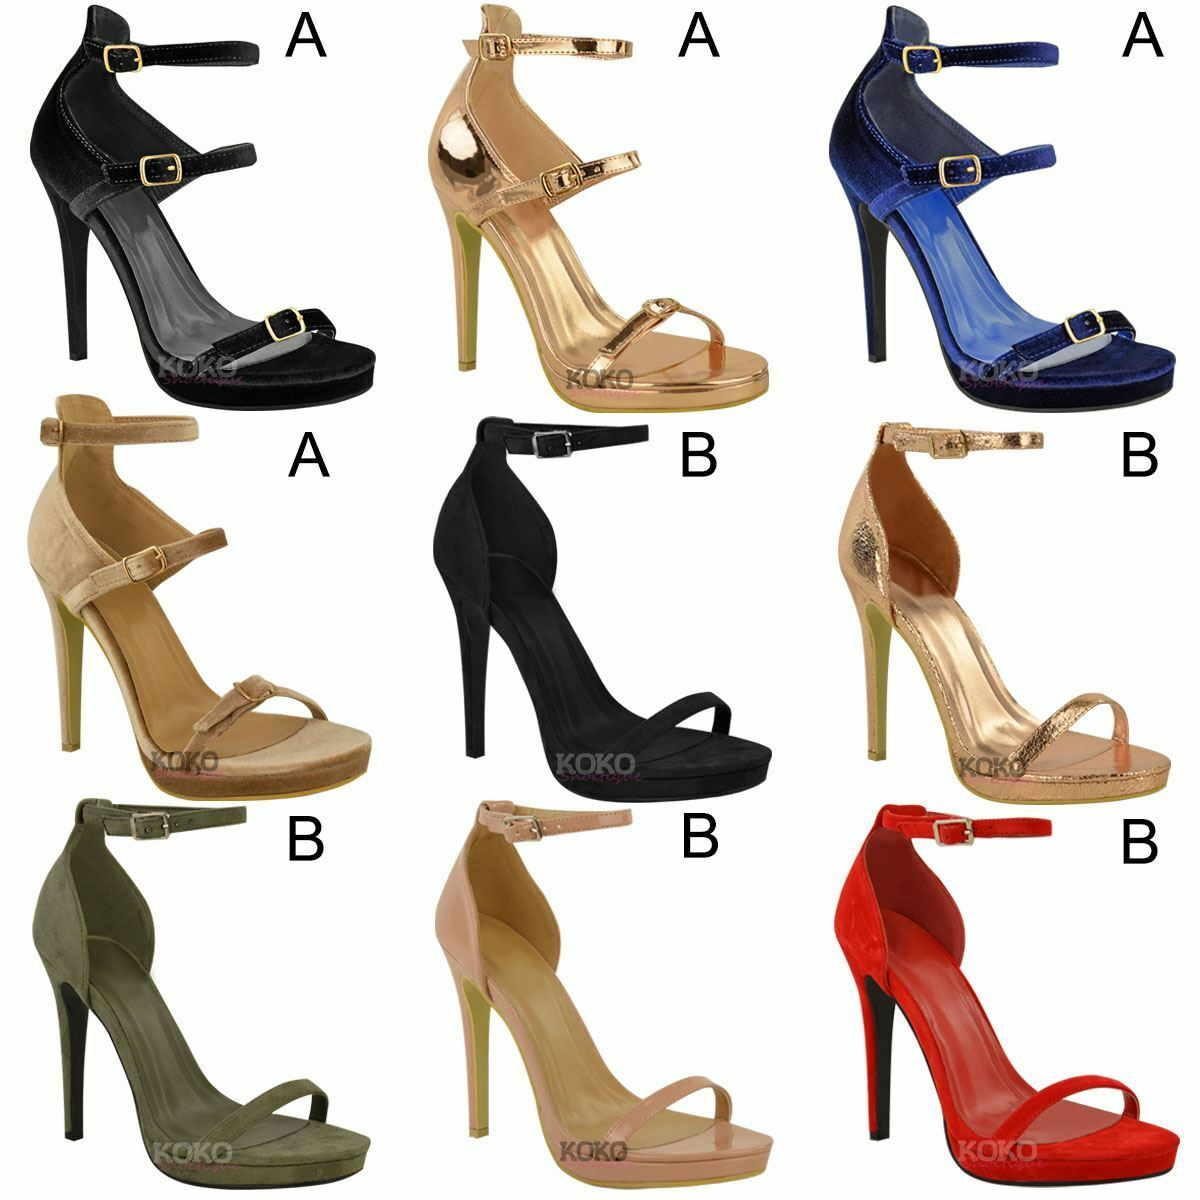 Womens Strappy Ladies High Heel Stiletto Peep Toe Ankle Strappy Womens Party Sandals Shoes Size 852354